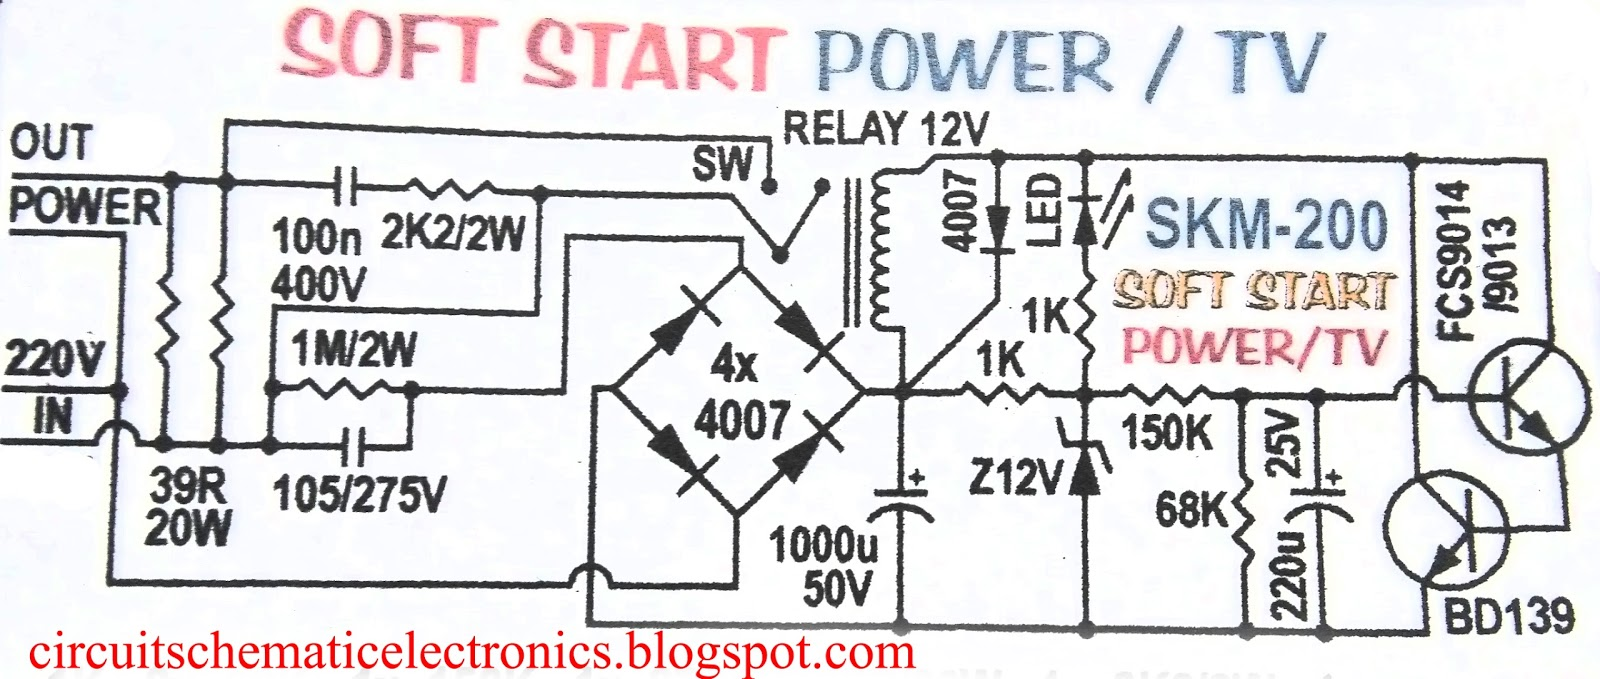 Auto soft start for electronic device circuit